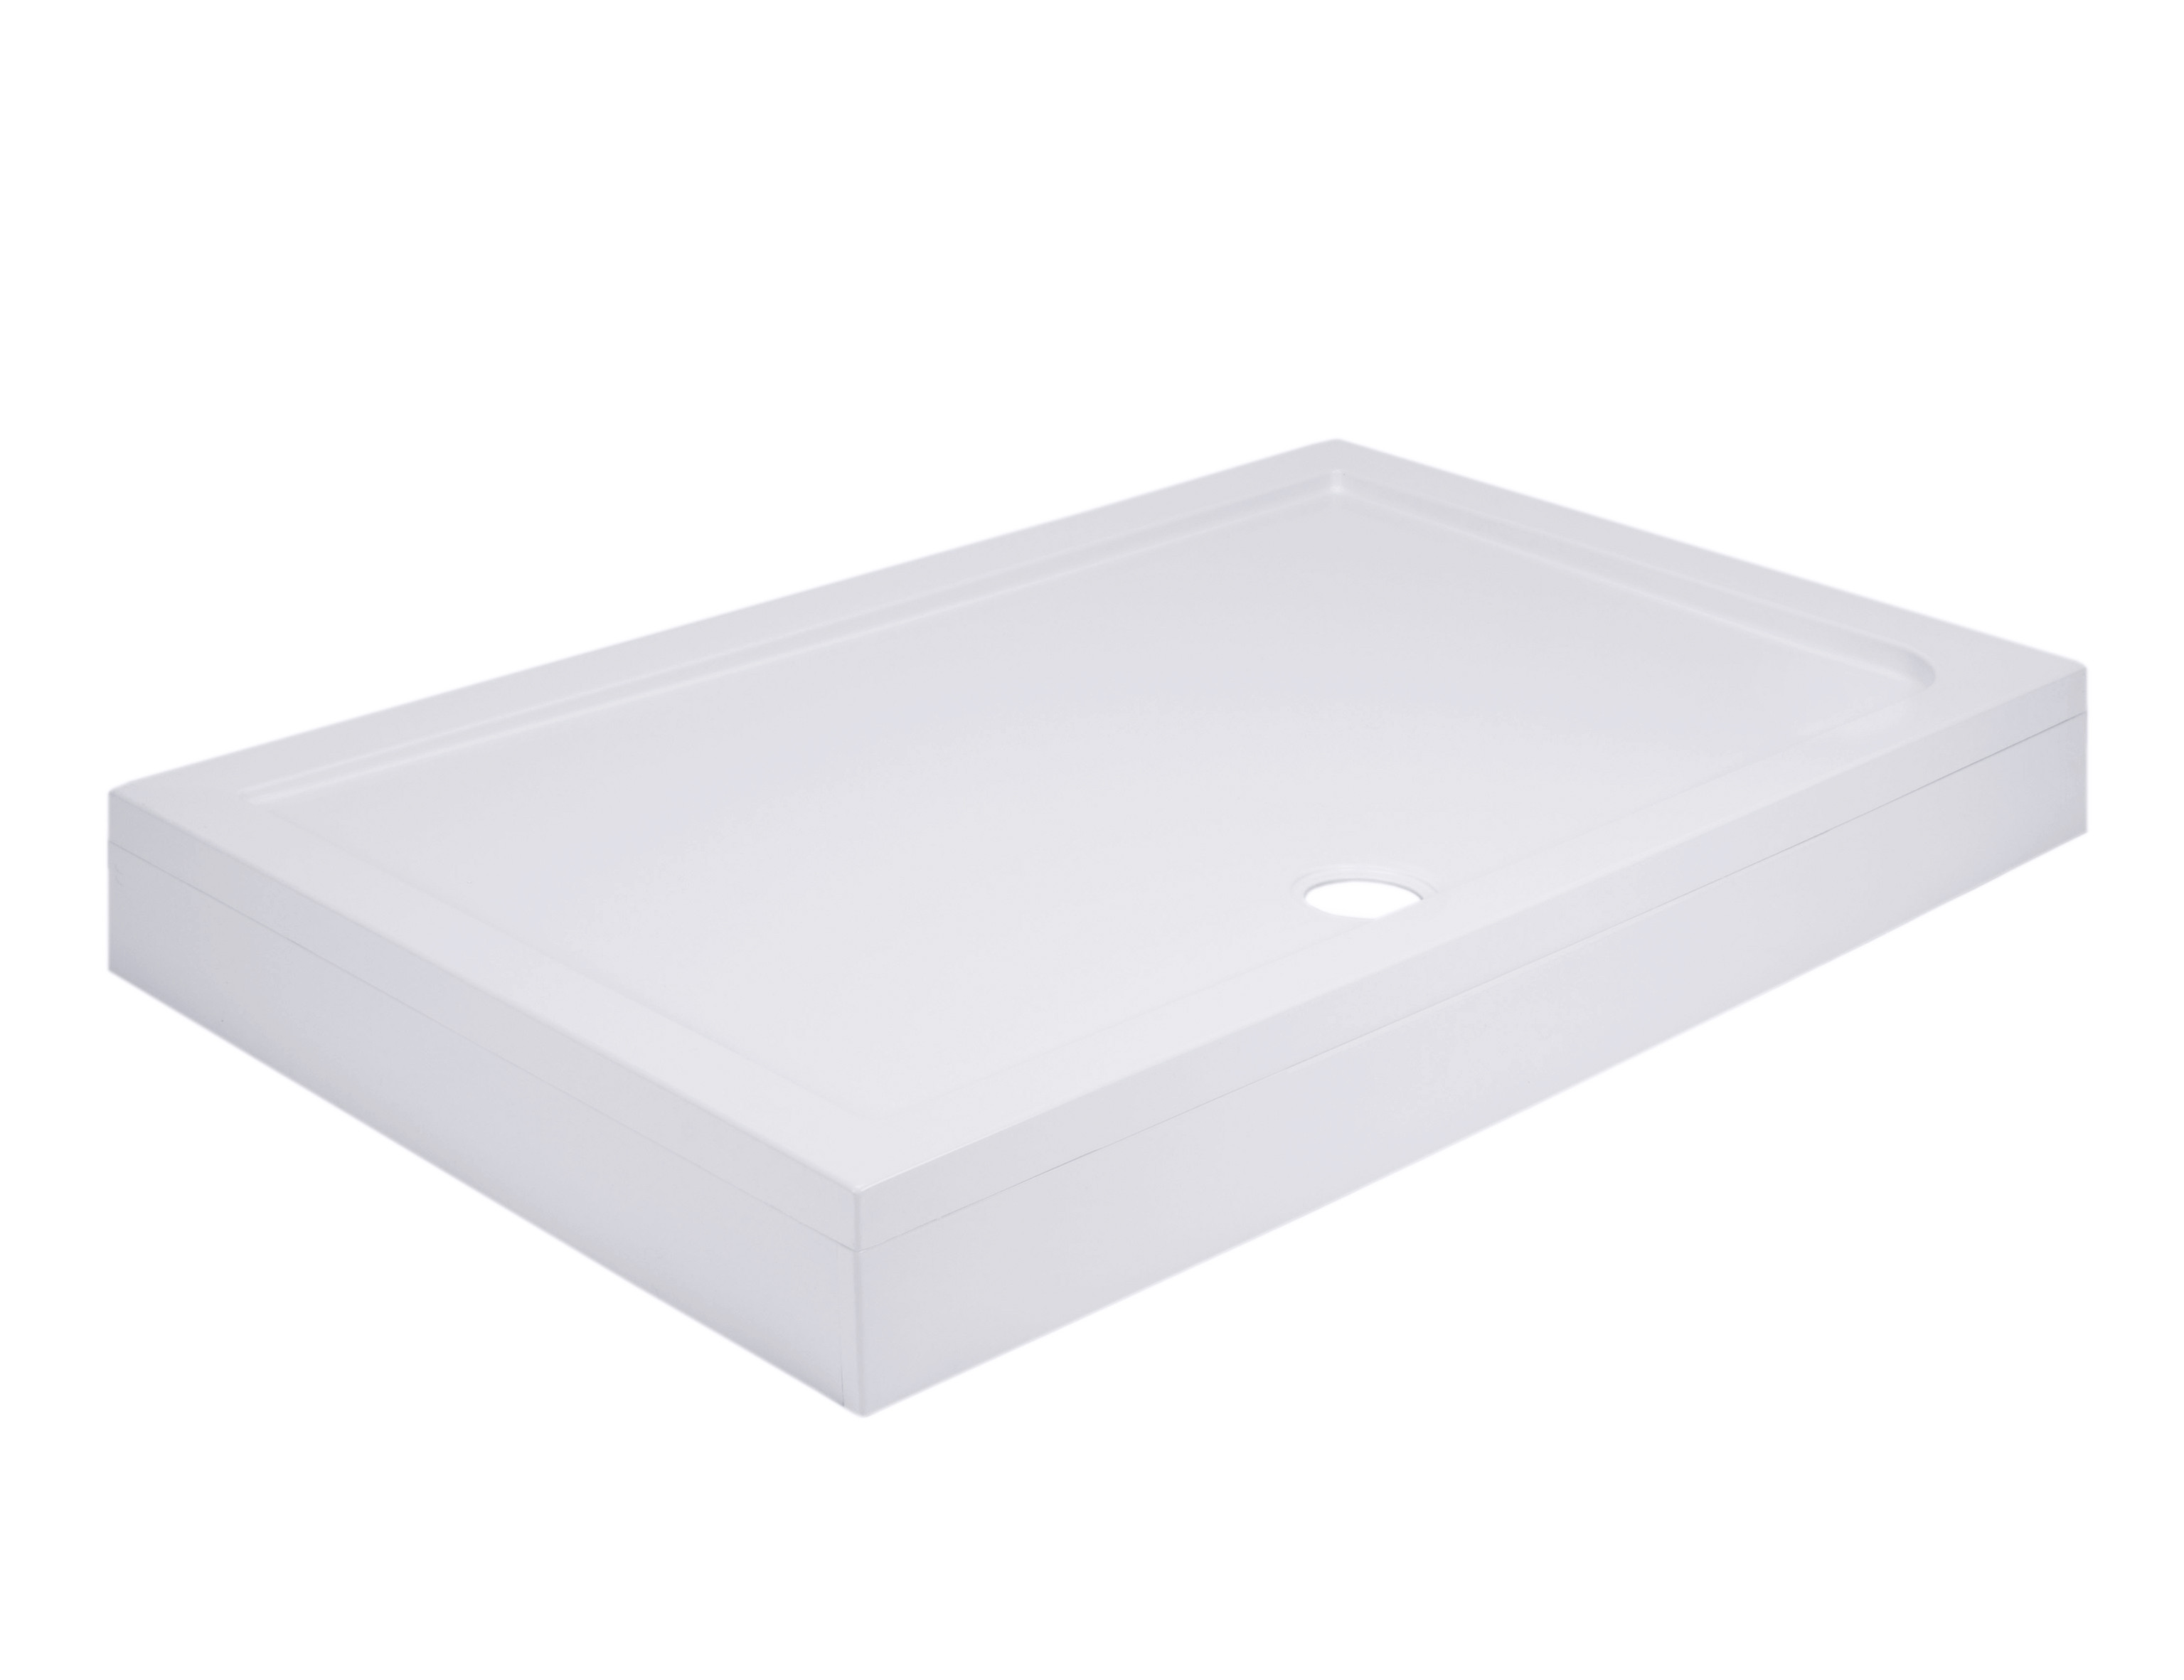 40mm Pearlstone 1600 x 700 Rectangular Shower Tray & Plinth